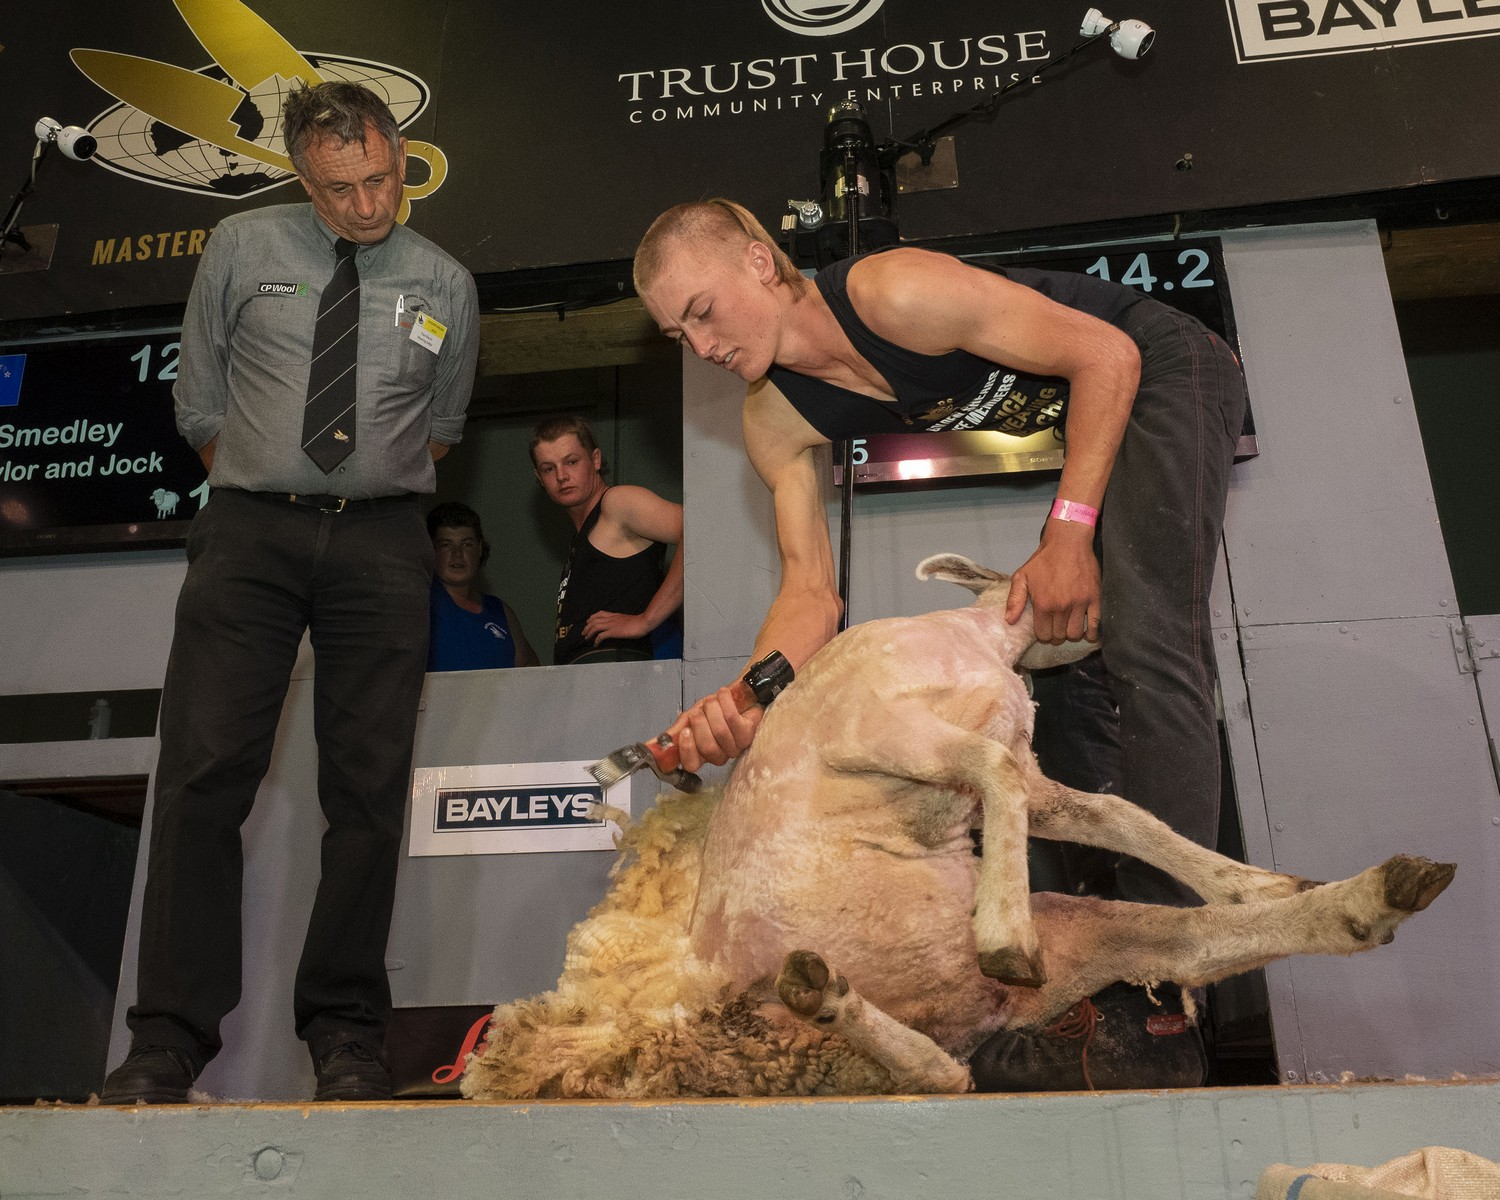 Jeese McIntyre, of Hastings, shearing to Pukemiro Station's win in the students challenge among teams from four agricultural training courses.